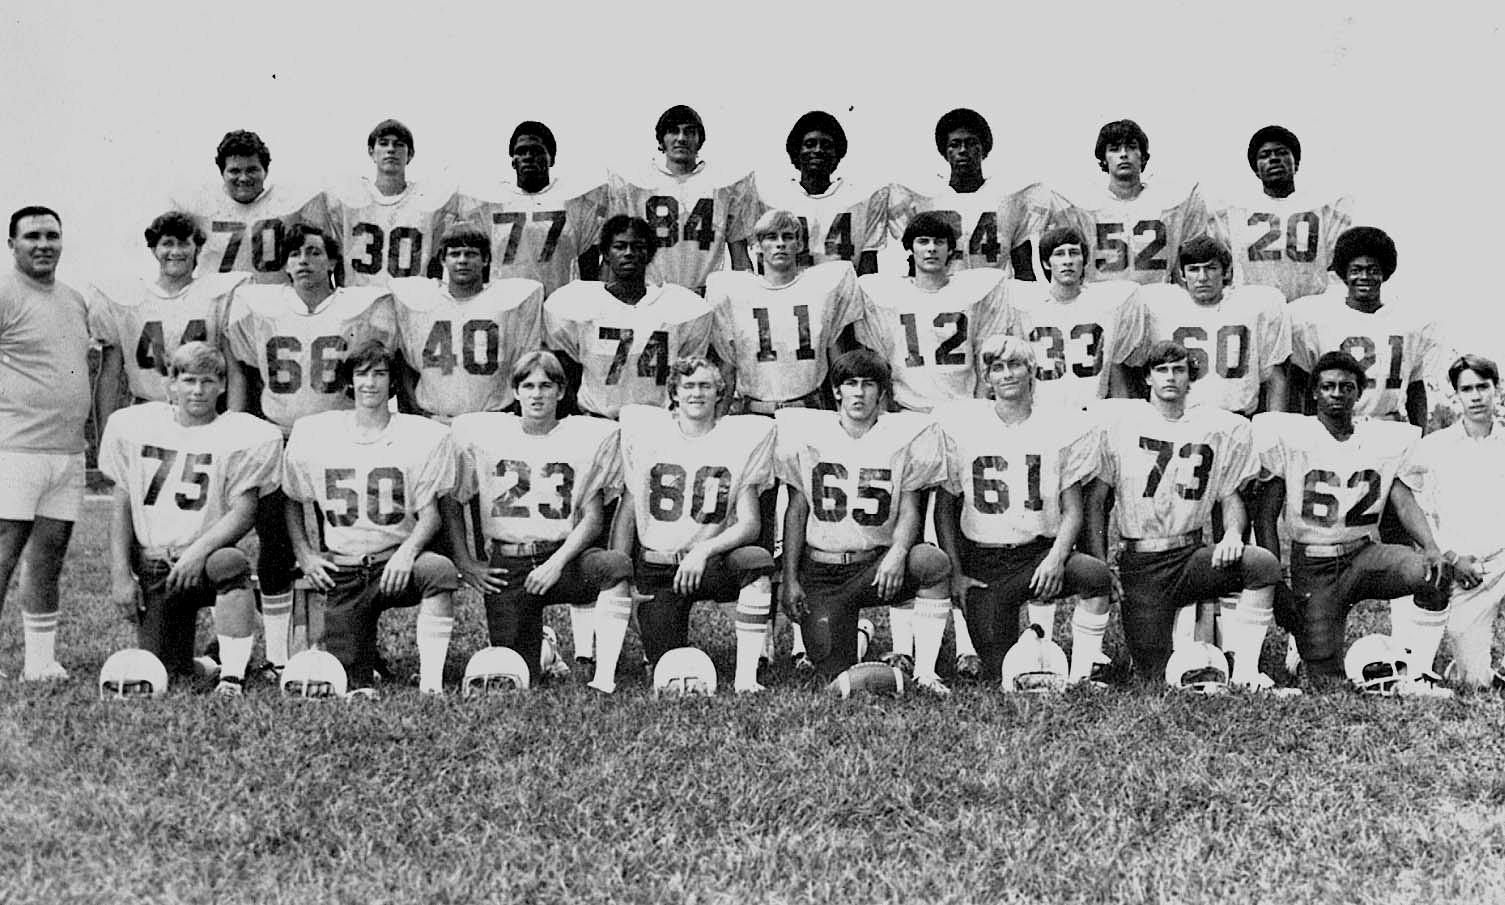 Flashback: The story behind the most dominant team in Texas